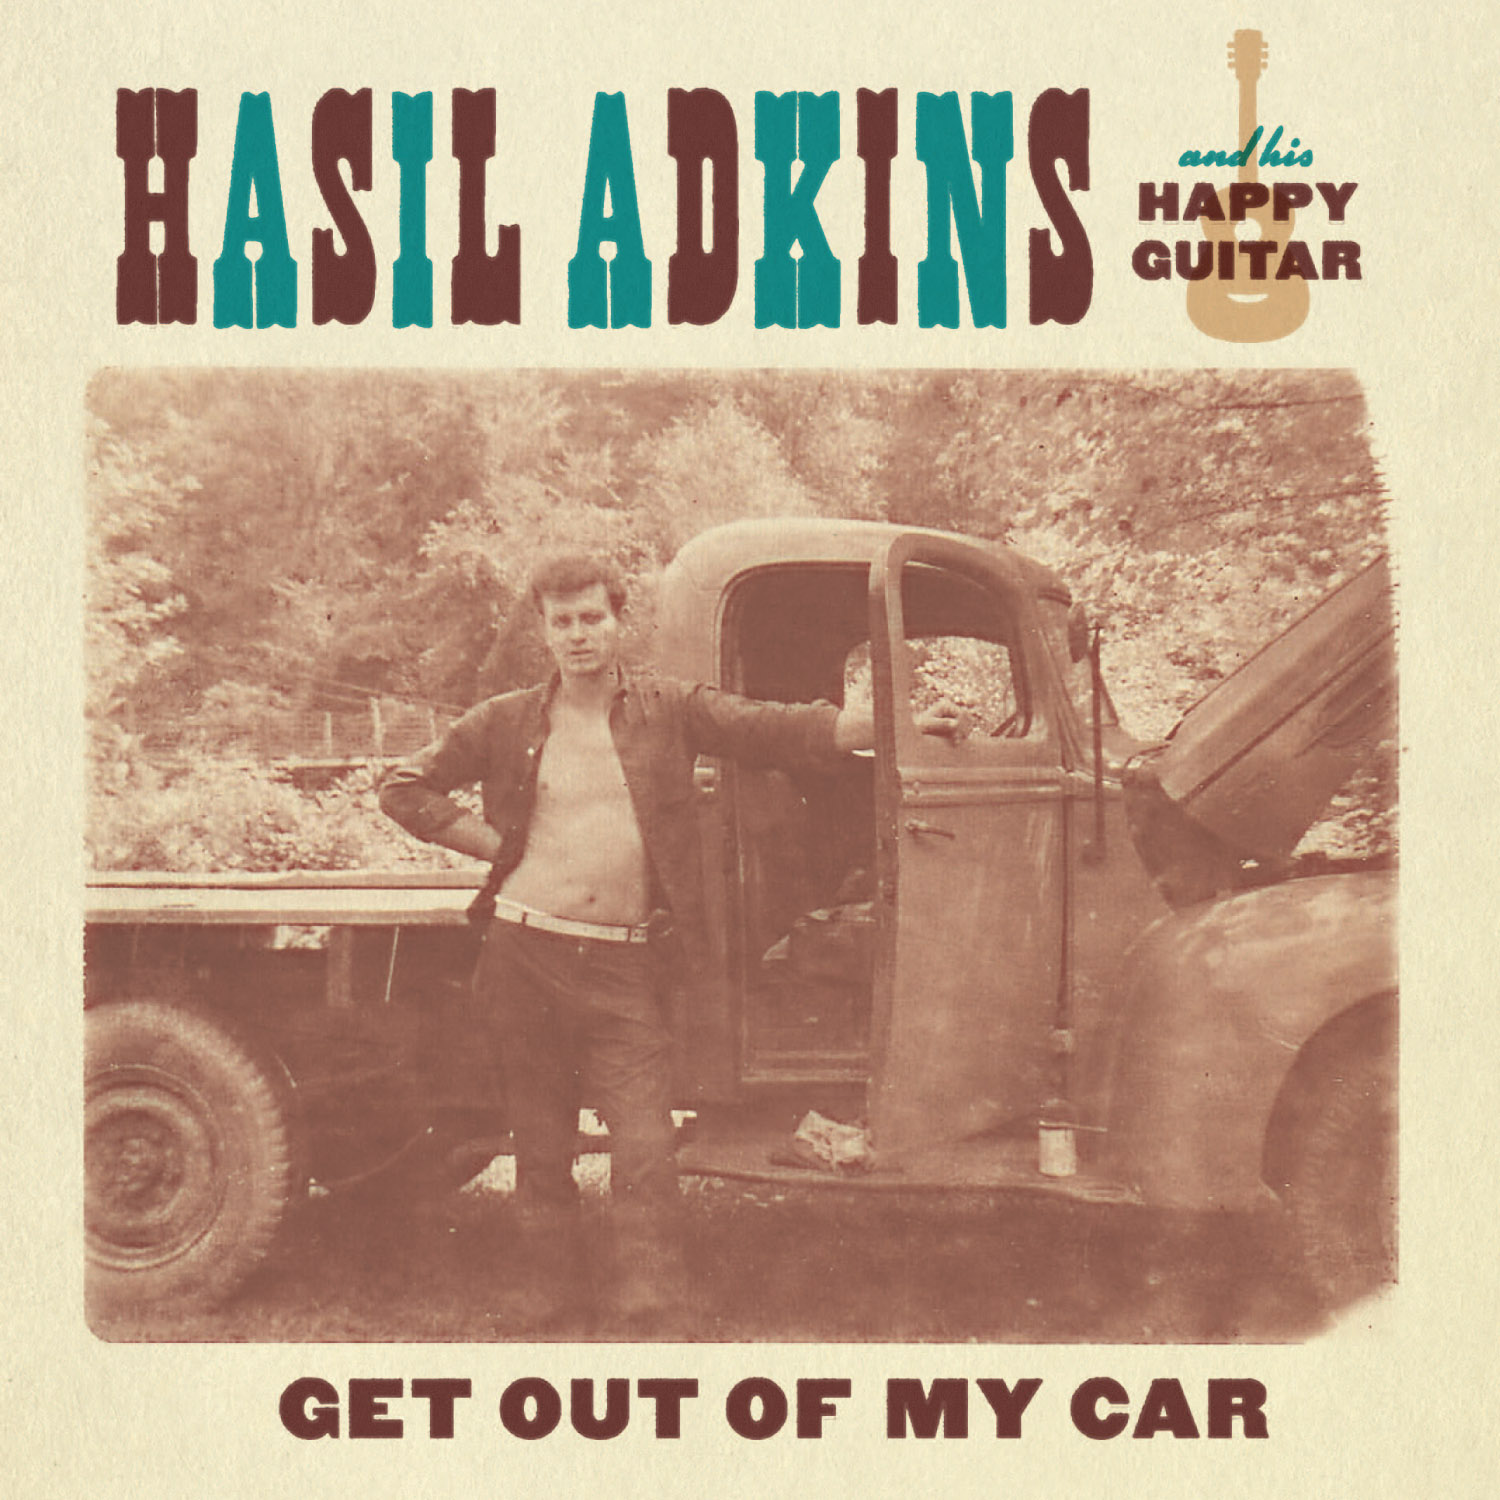 Hasil Adkins - Get Out of My Car 45 sleeve